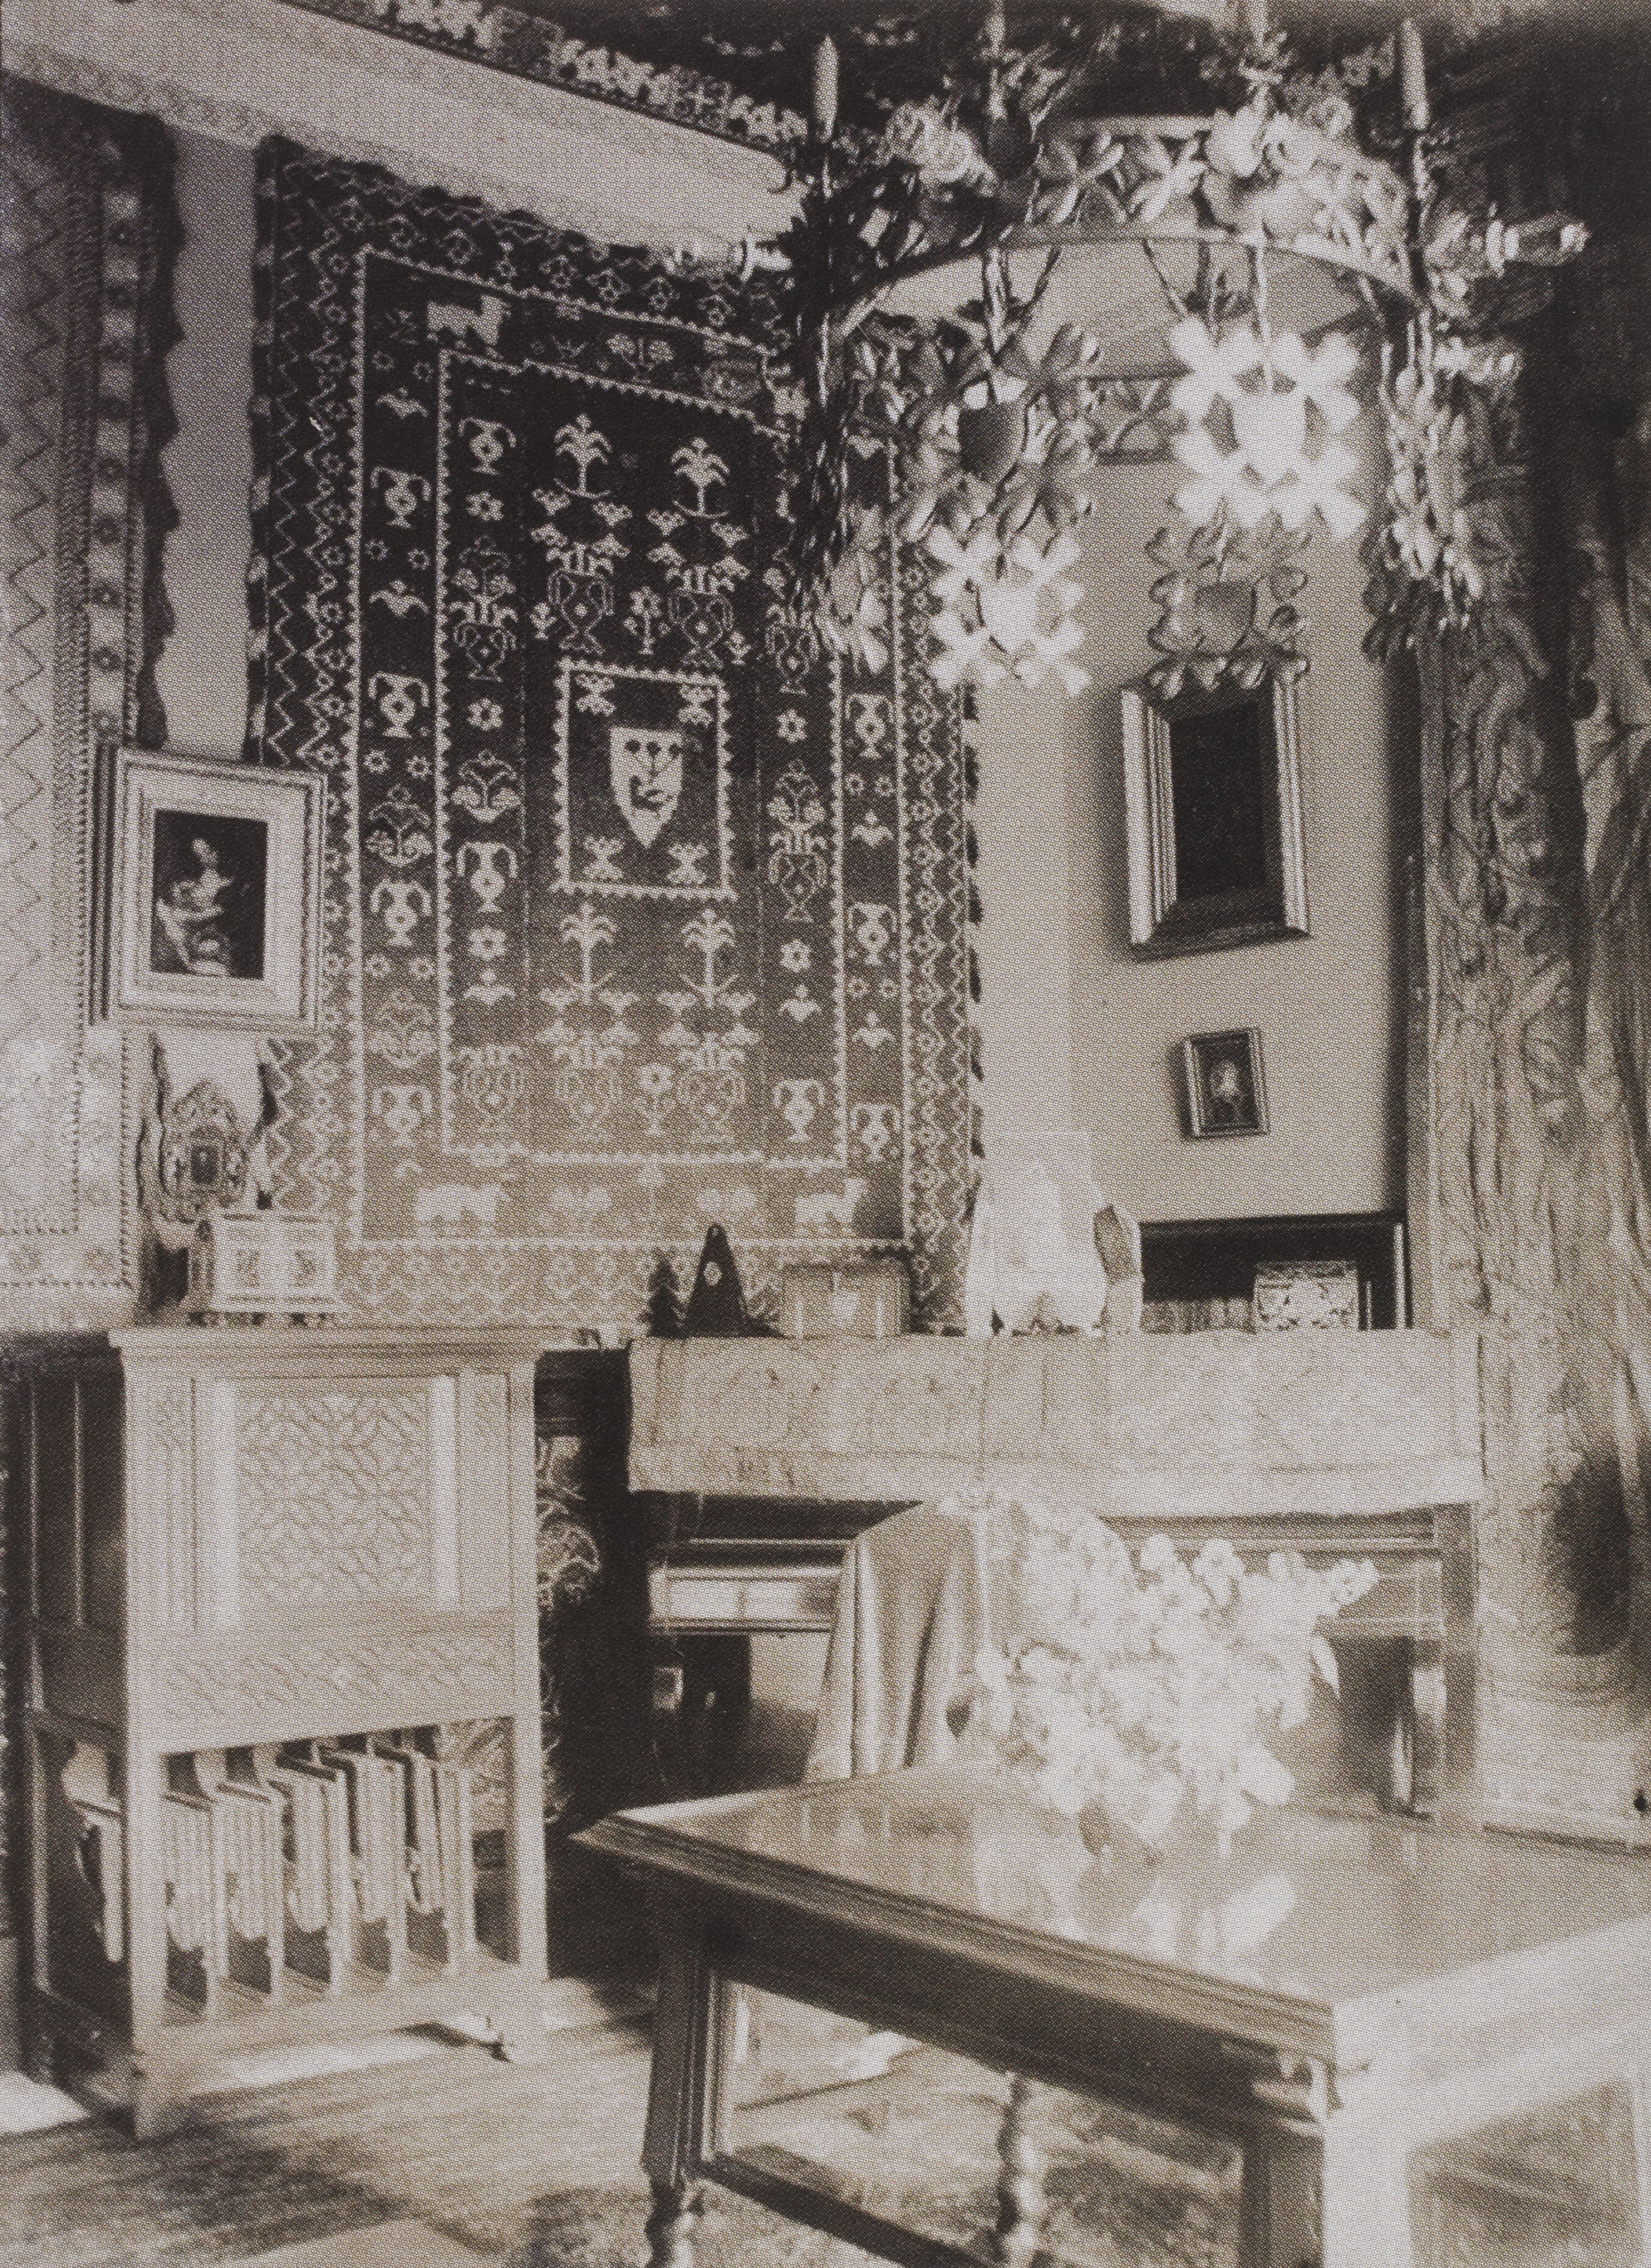 Casa Amatller: Music room, 1901